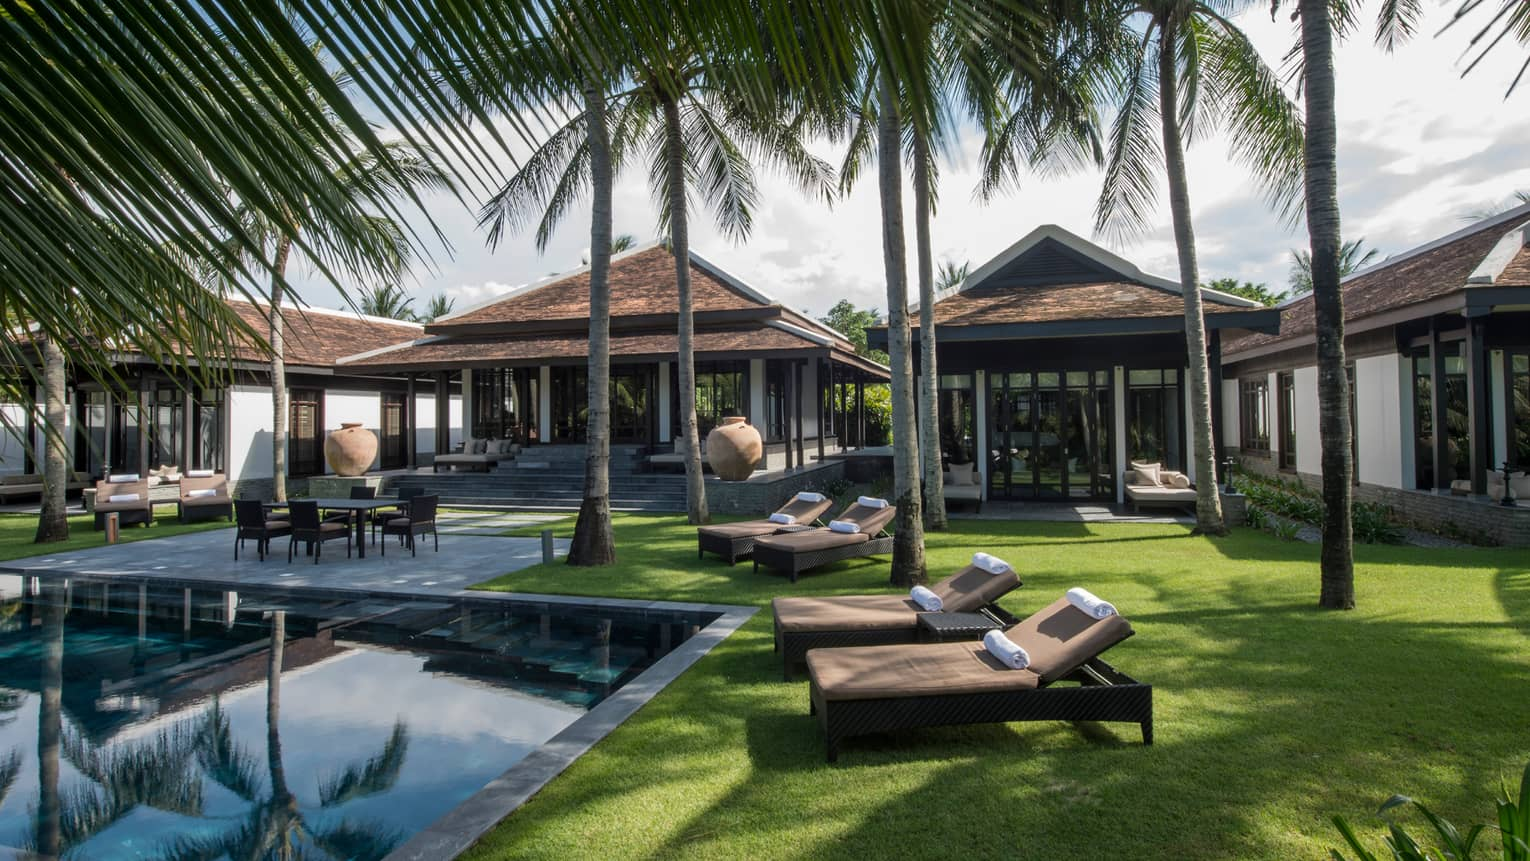 Three-bedroom Hilltop Villas, palm trees, lounge chairs on lawn around outdoor pool